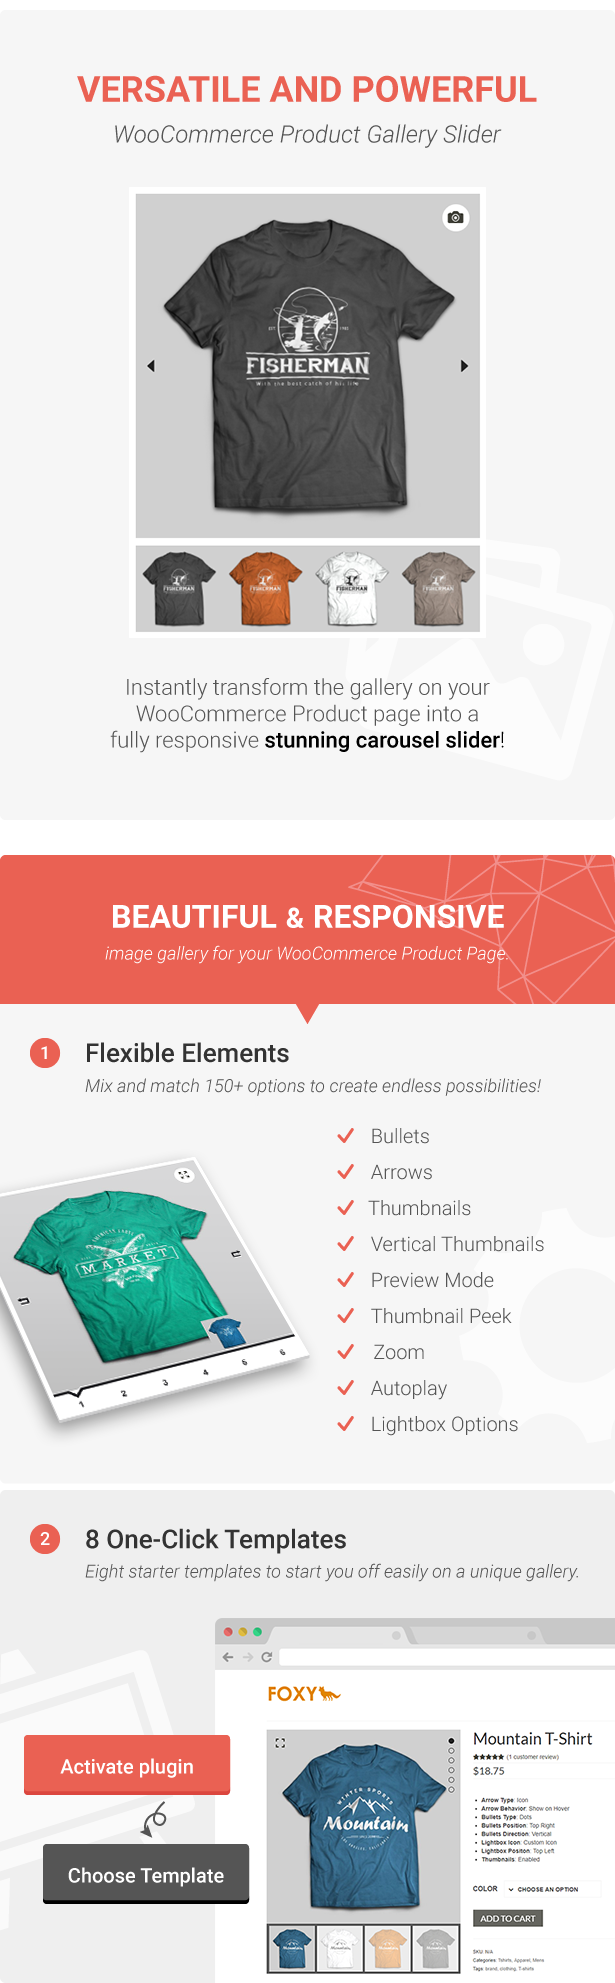 Foxy - WooCommerce Product Image Gallery Slider Carousel - 3